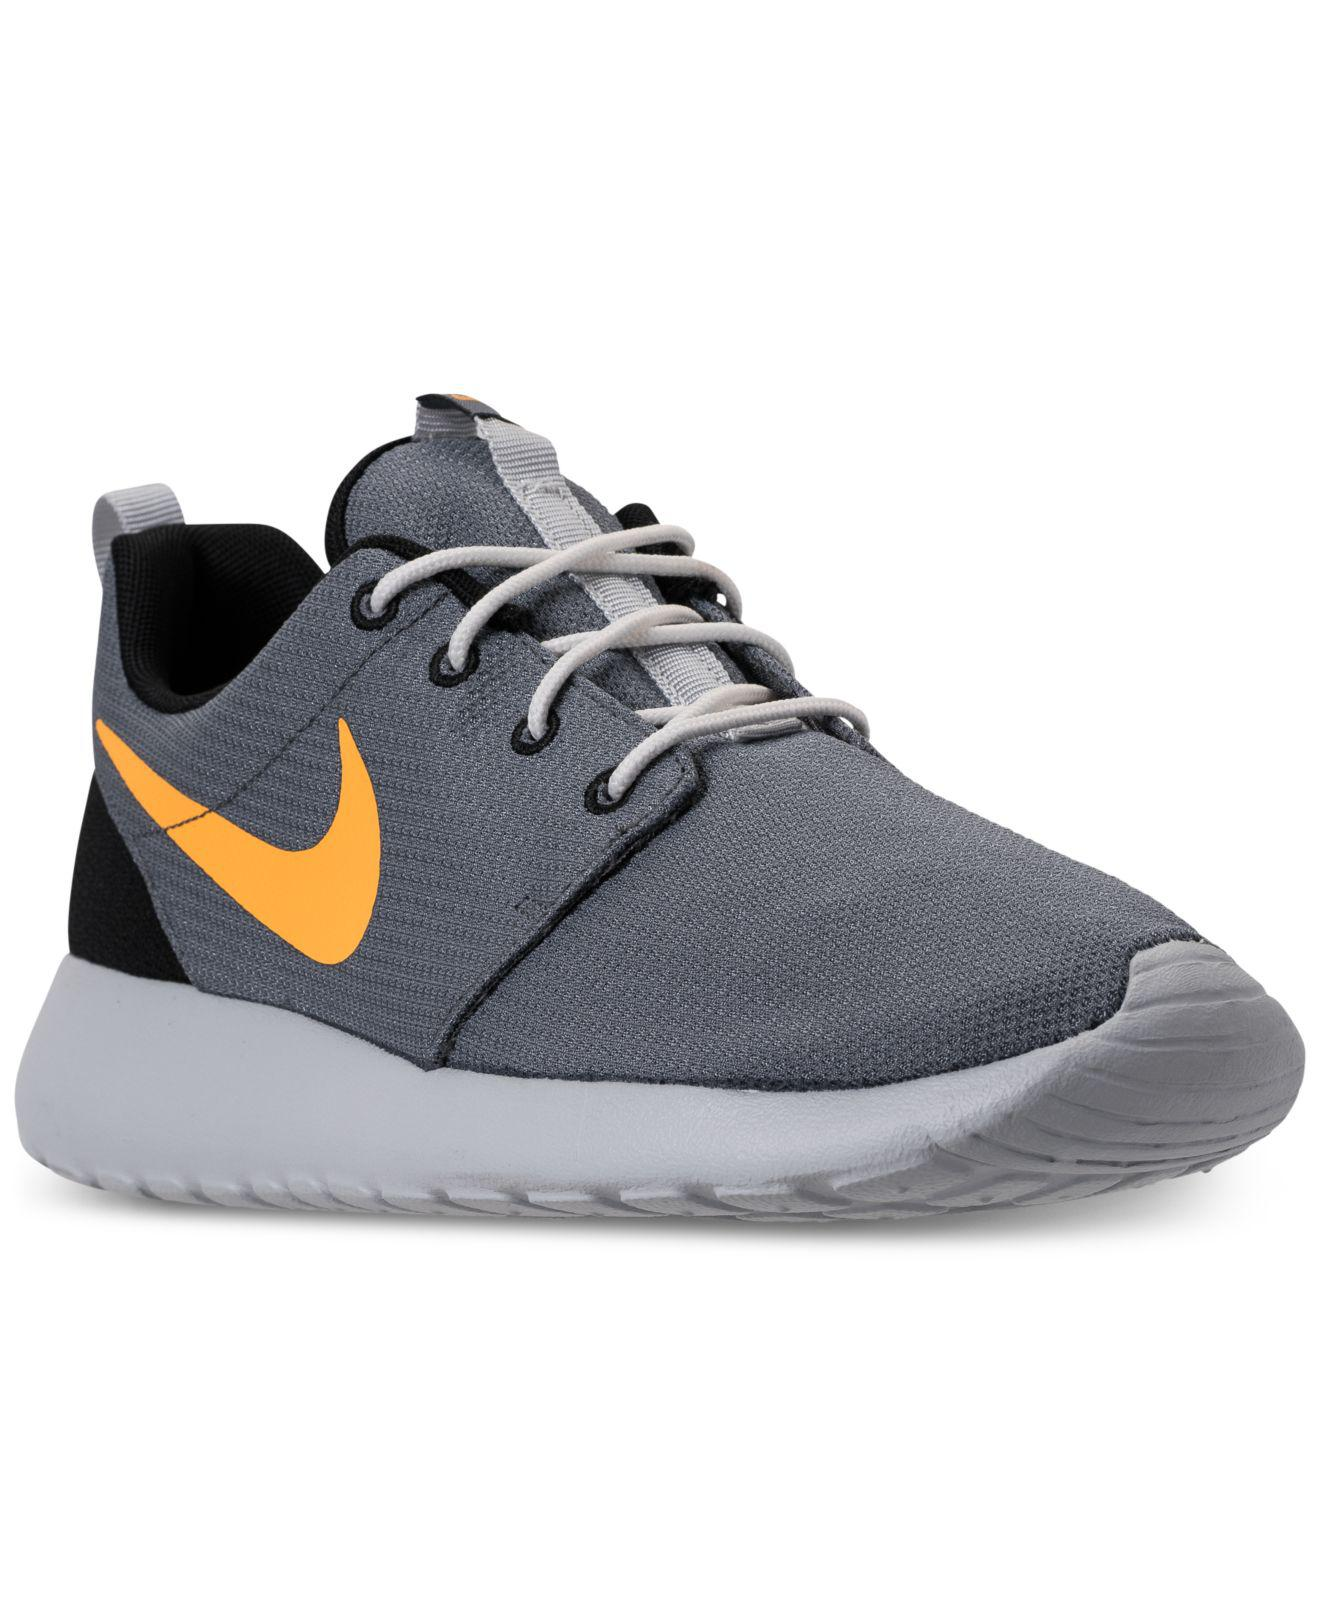 Lyst - Nike Roshe One Casual Sneakers From Finish Line in Gray for Men a1b431702978